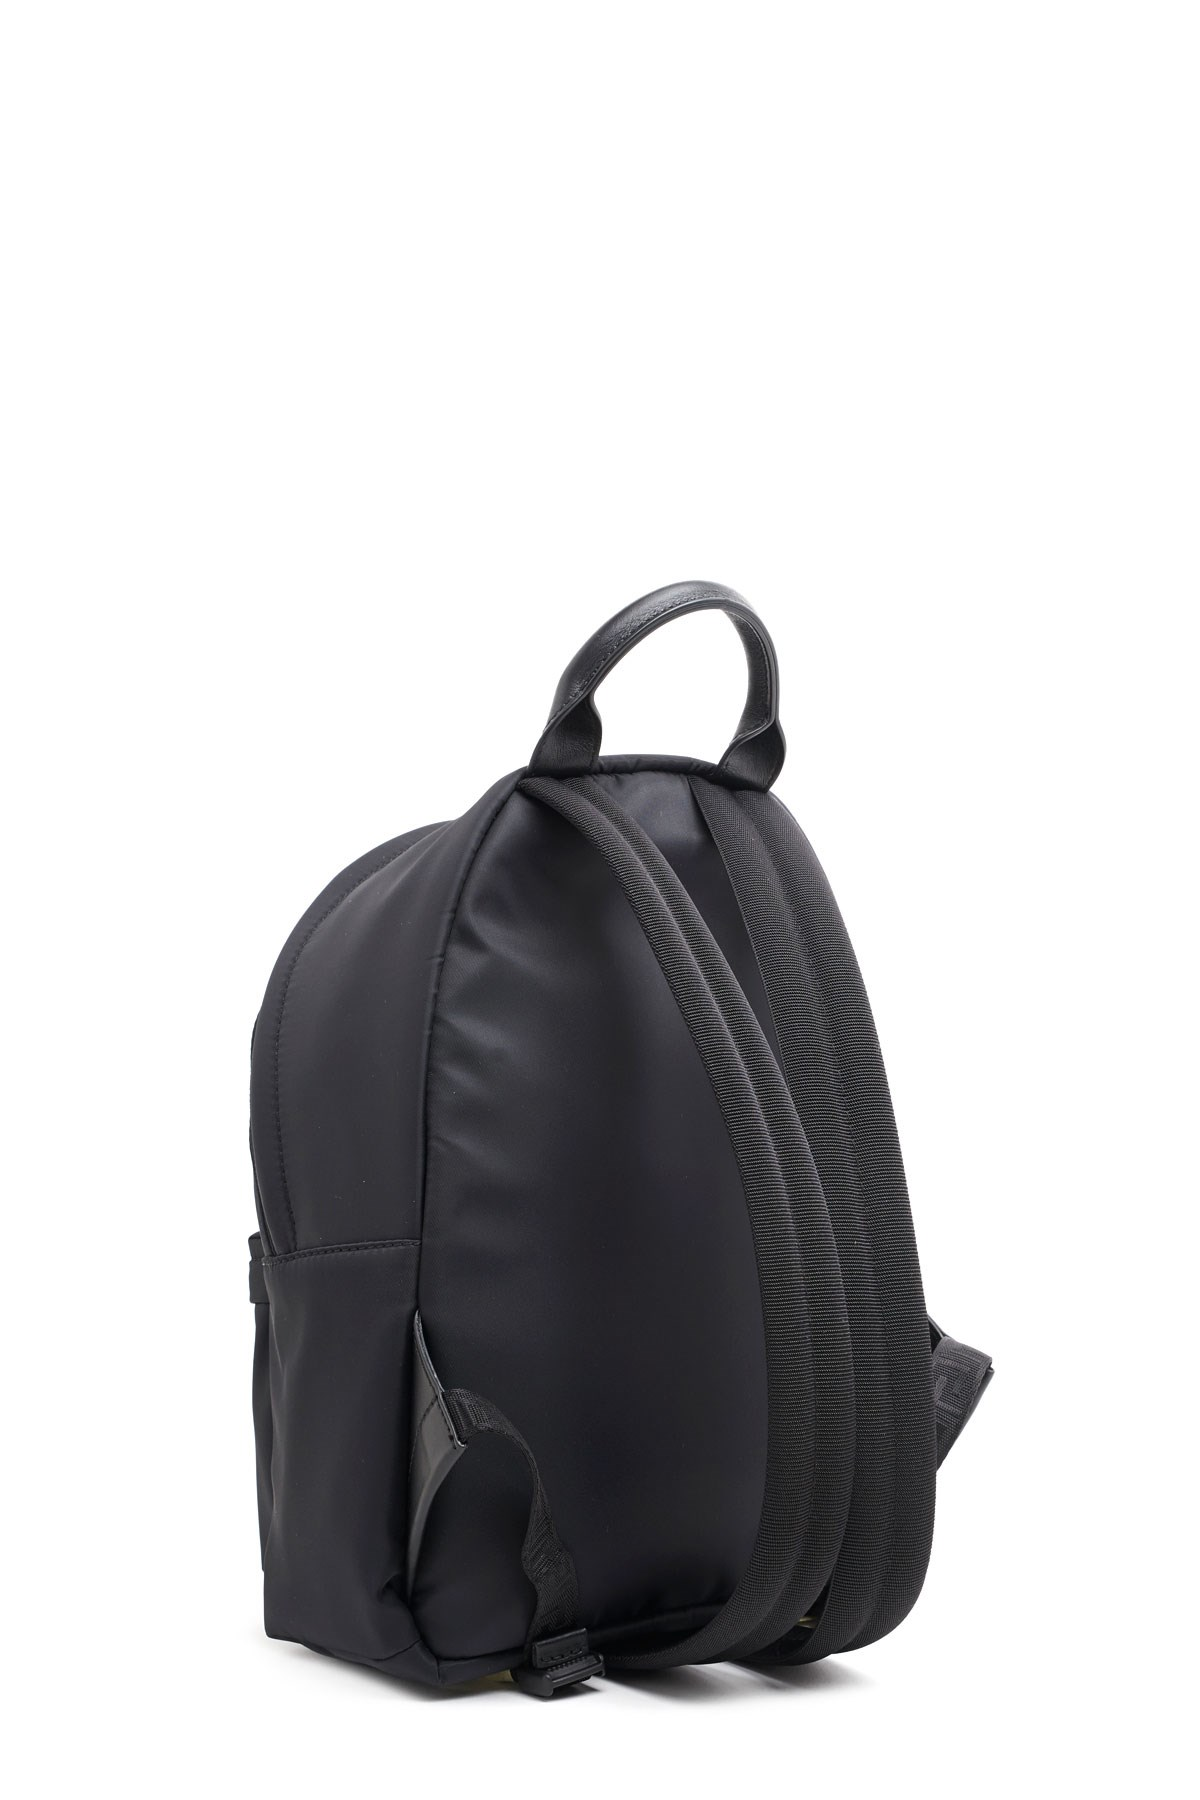 young versace logo backpack available on julian-fashion.com - 64326 c3a74166d339d